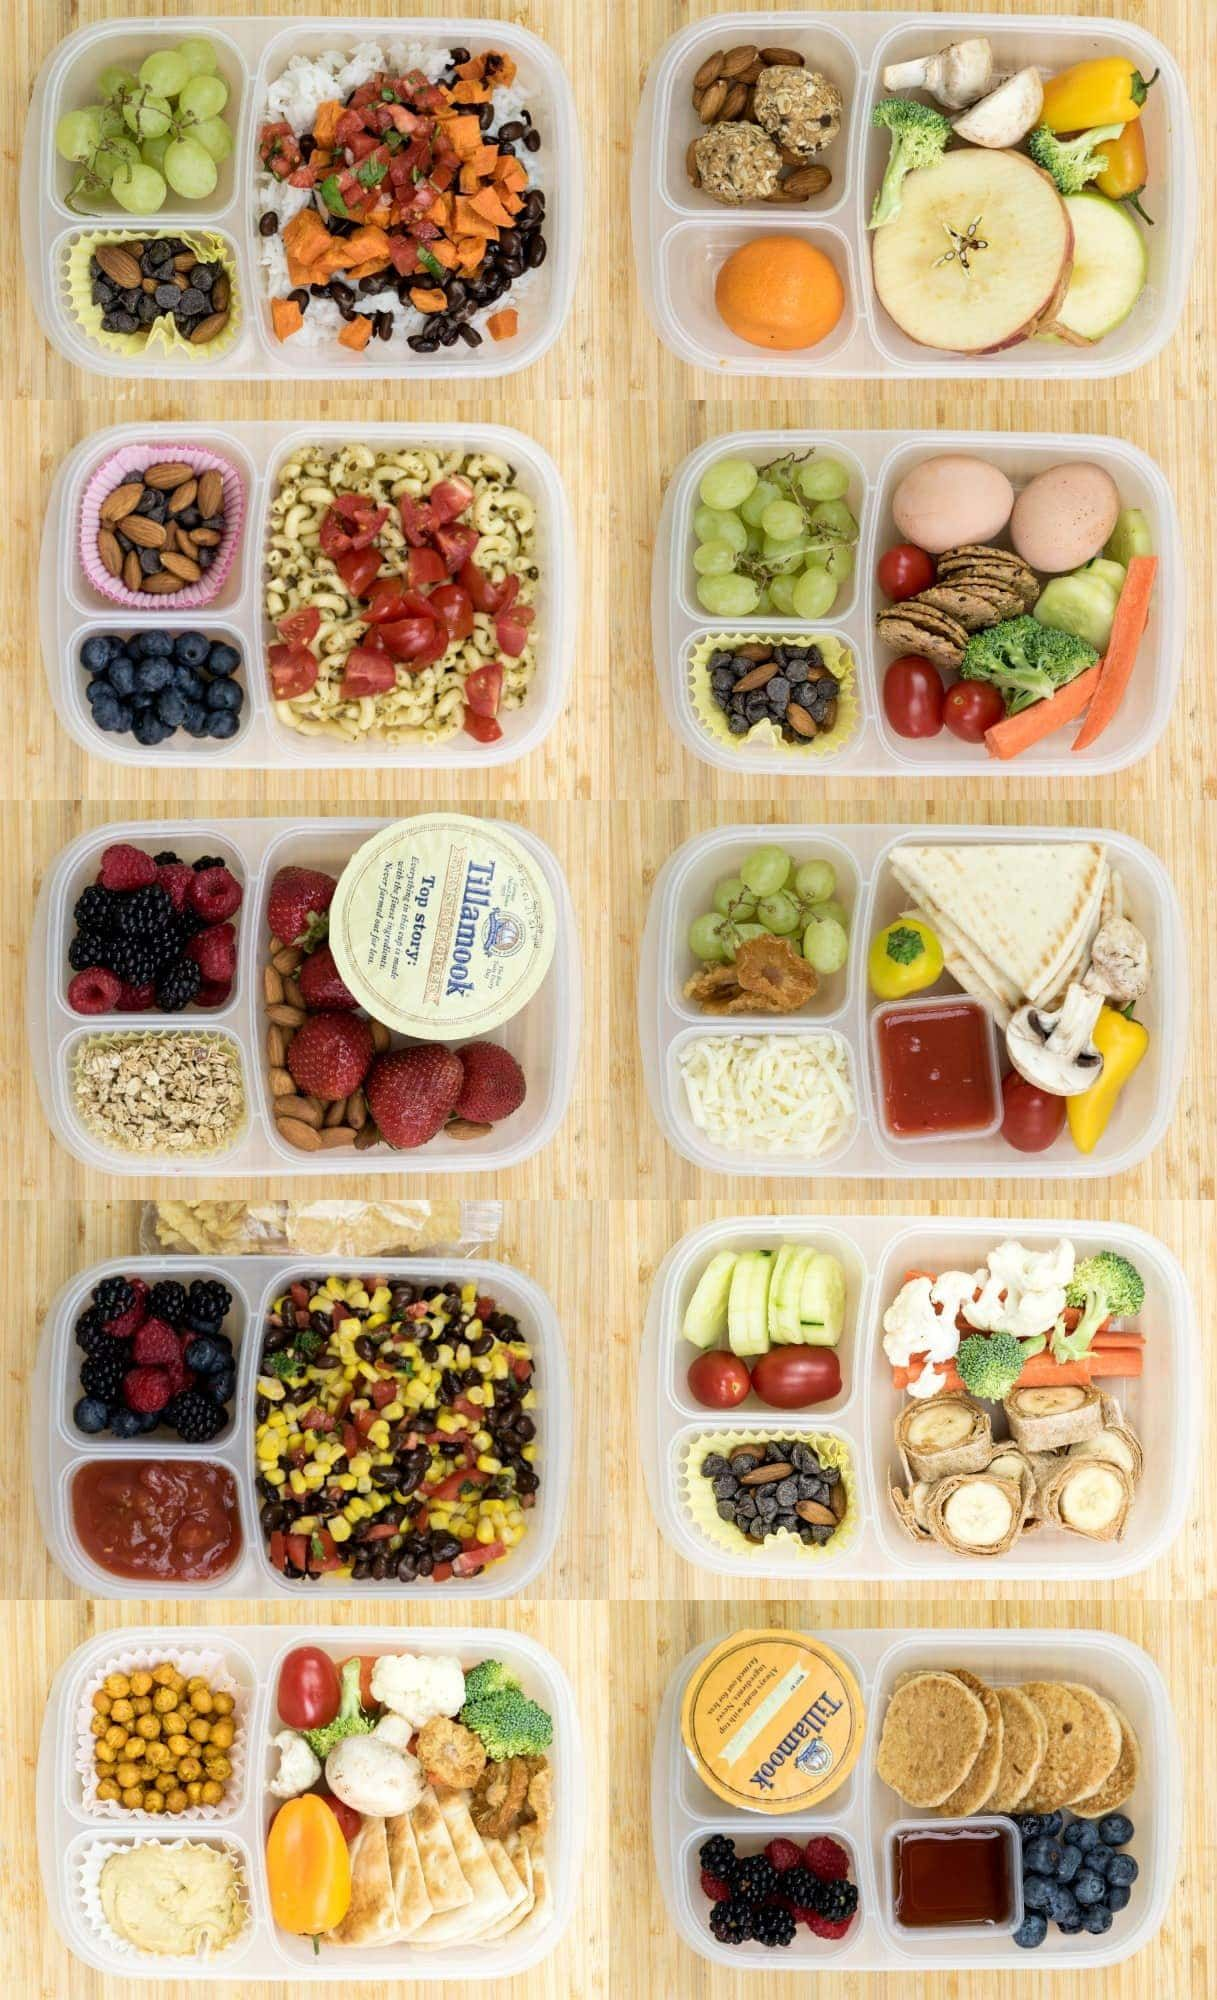 12 Healthy Lunch Box Ideas for Kids or Adults images